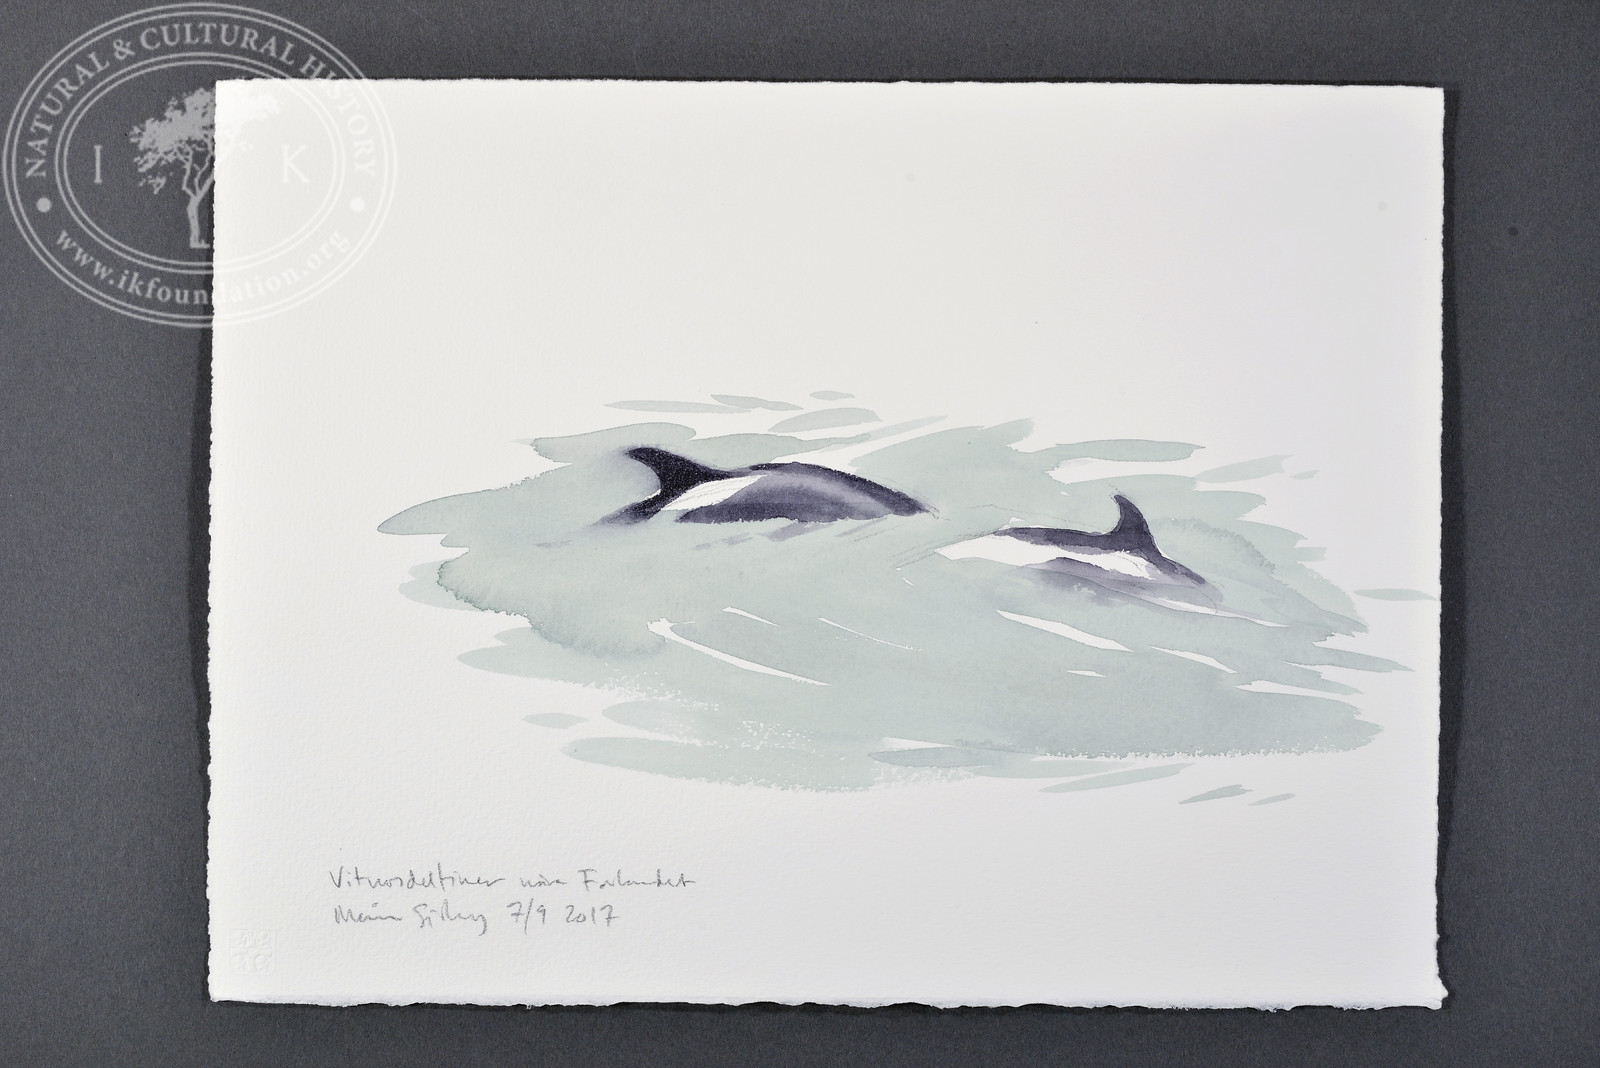 """White-beaked dolphins near Forlandet, Svalbard 